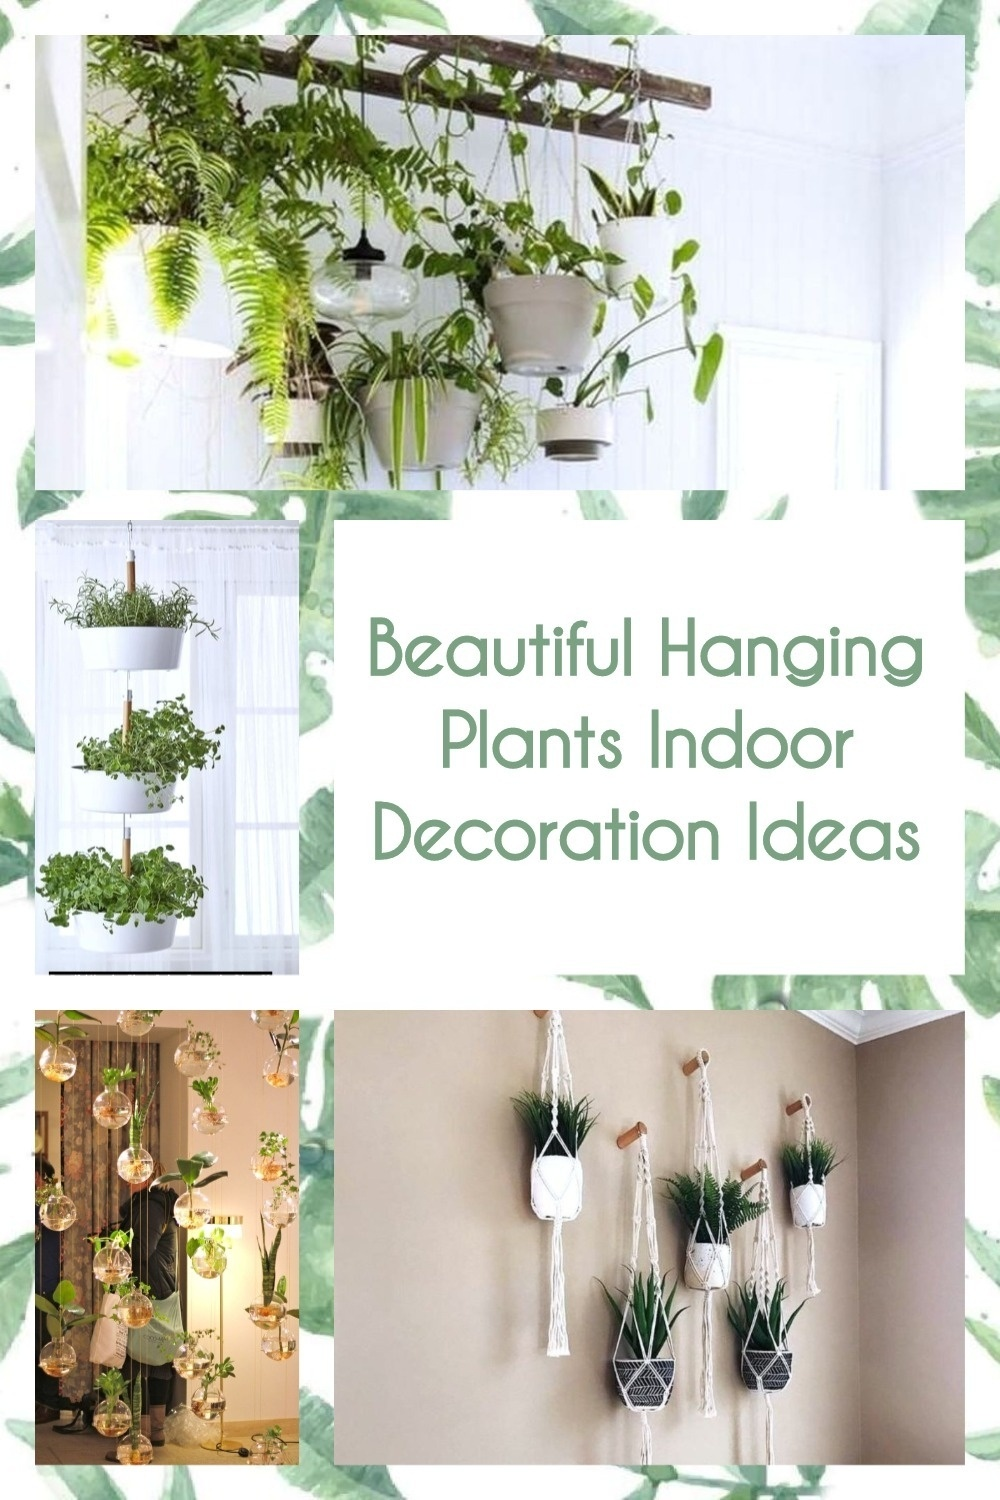 Beautiful Hanging Plants Indoor Decoration Ideas